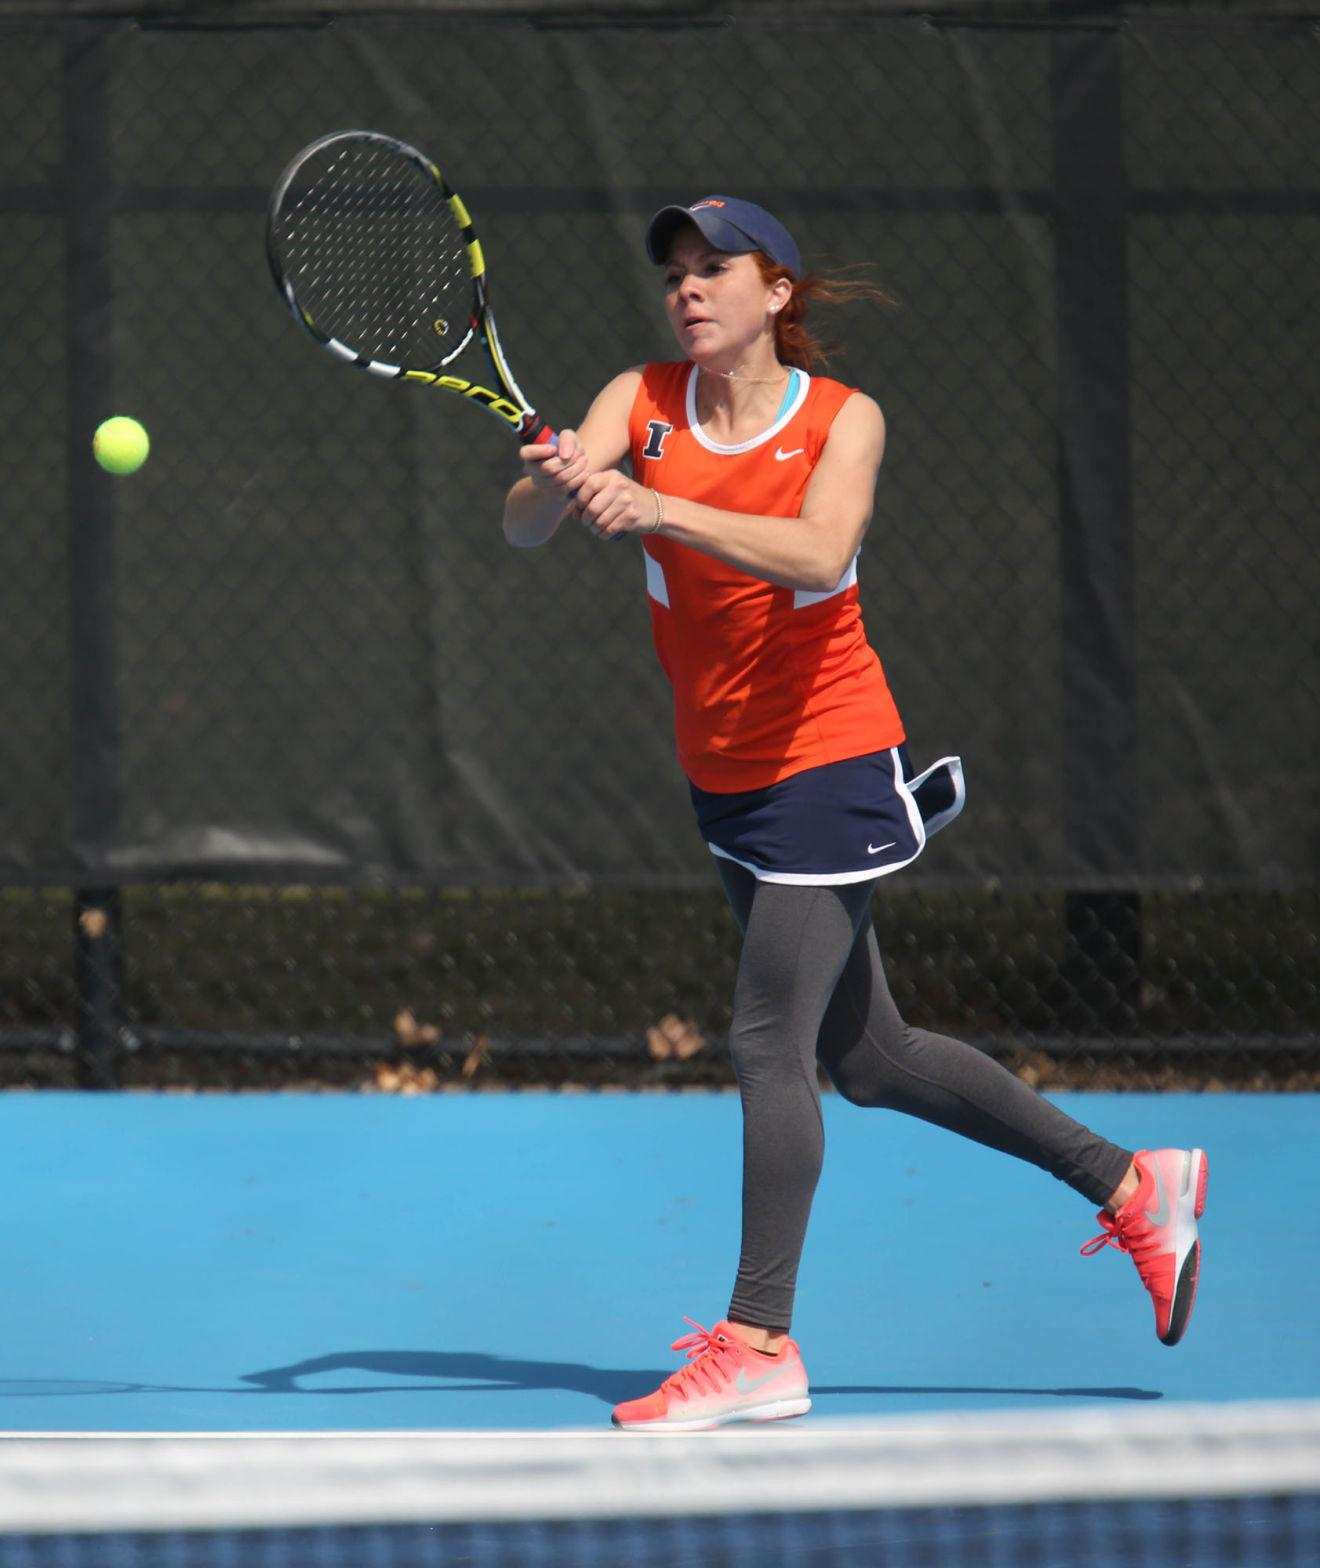 Illinois' Madie Baillon attempts to return the ball during the match against Rutgers on April 5. The Illini will face Northwestern on Friday.